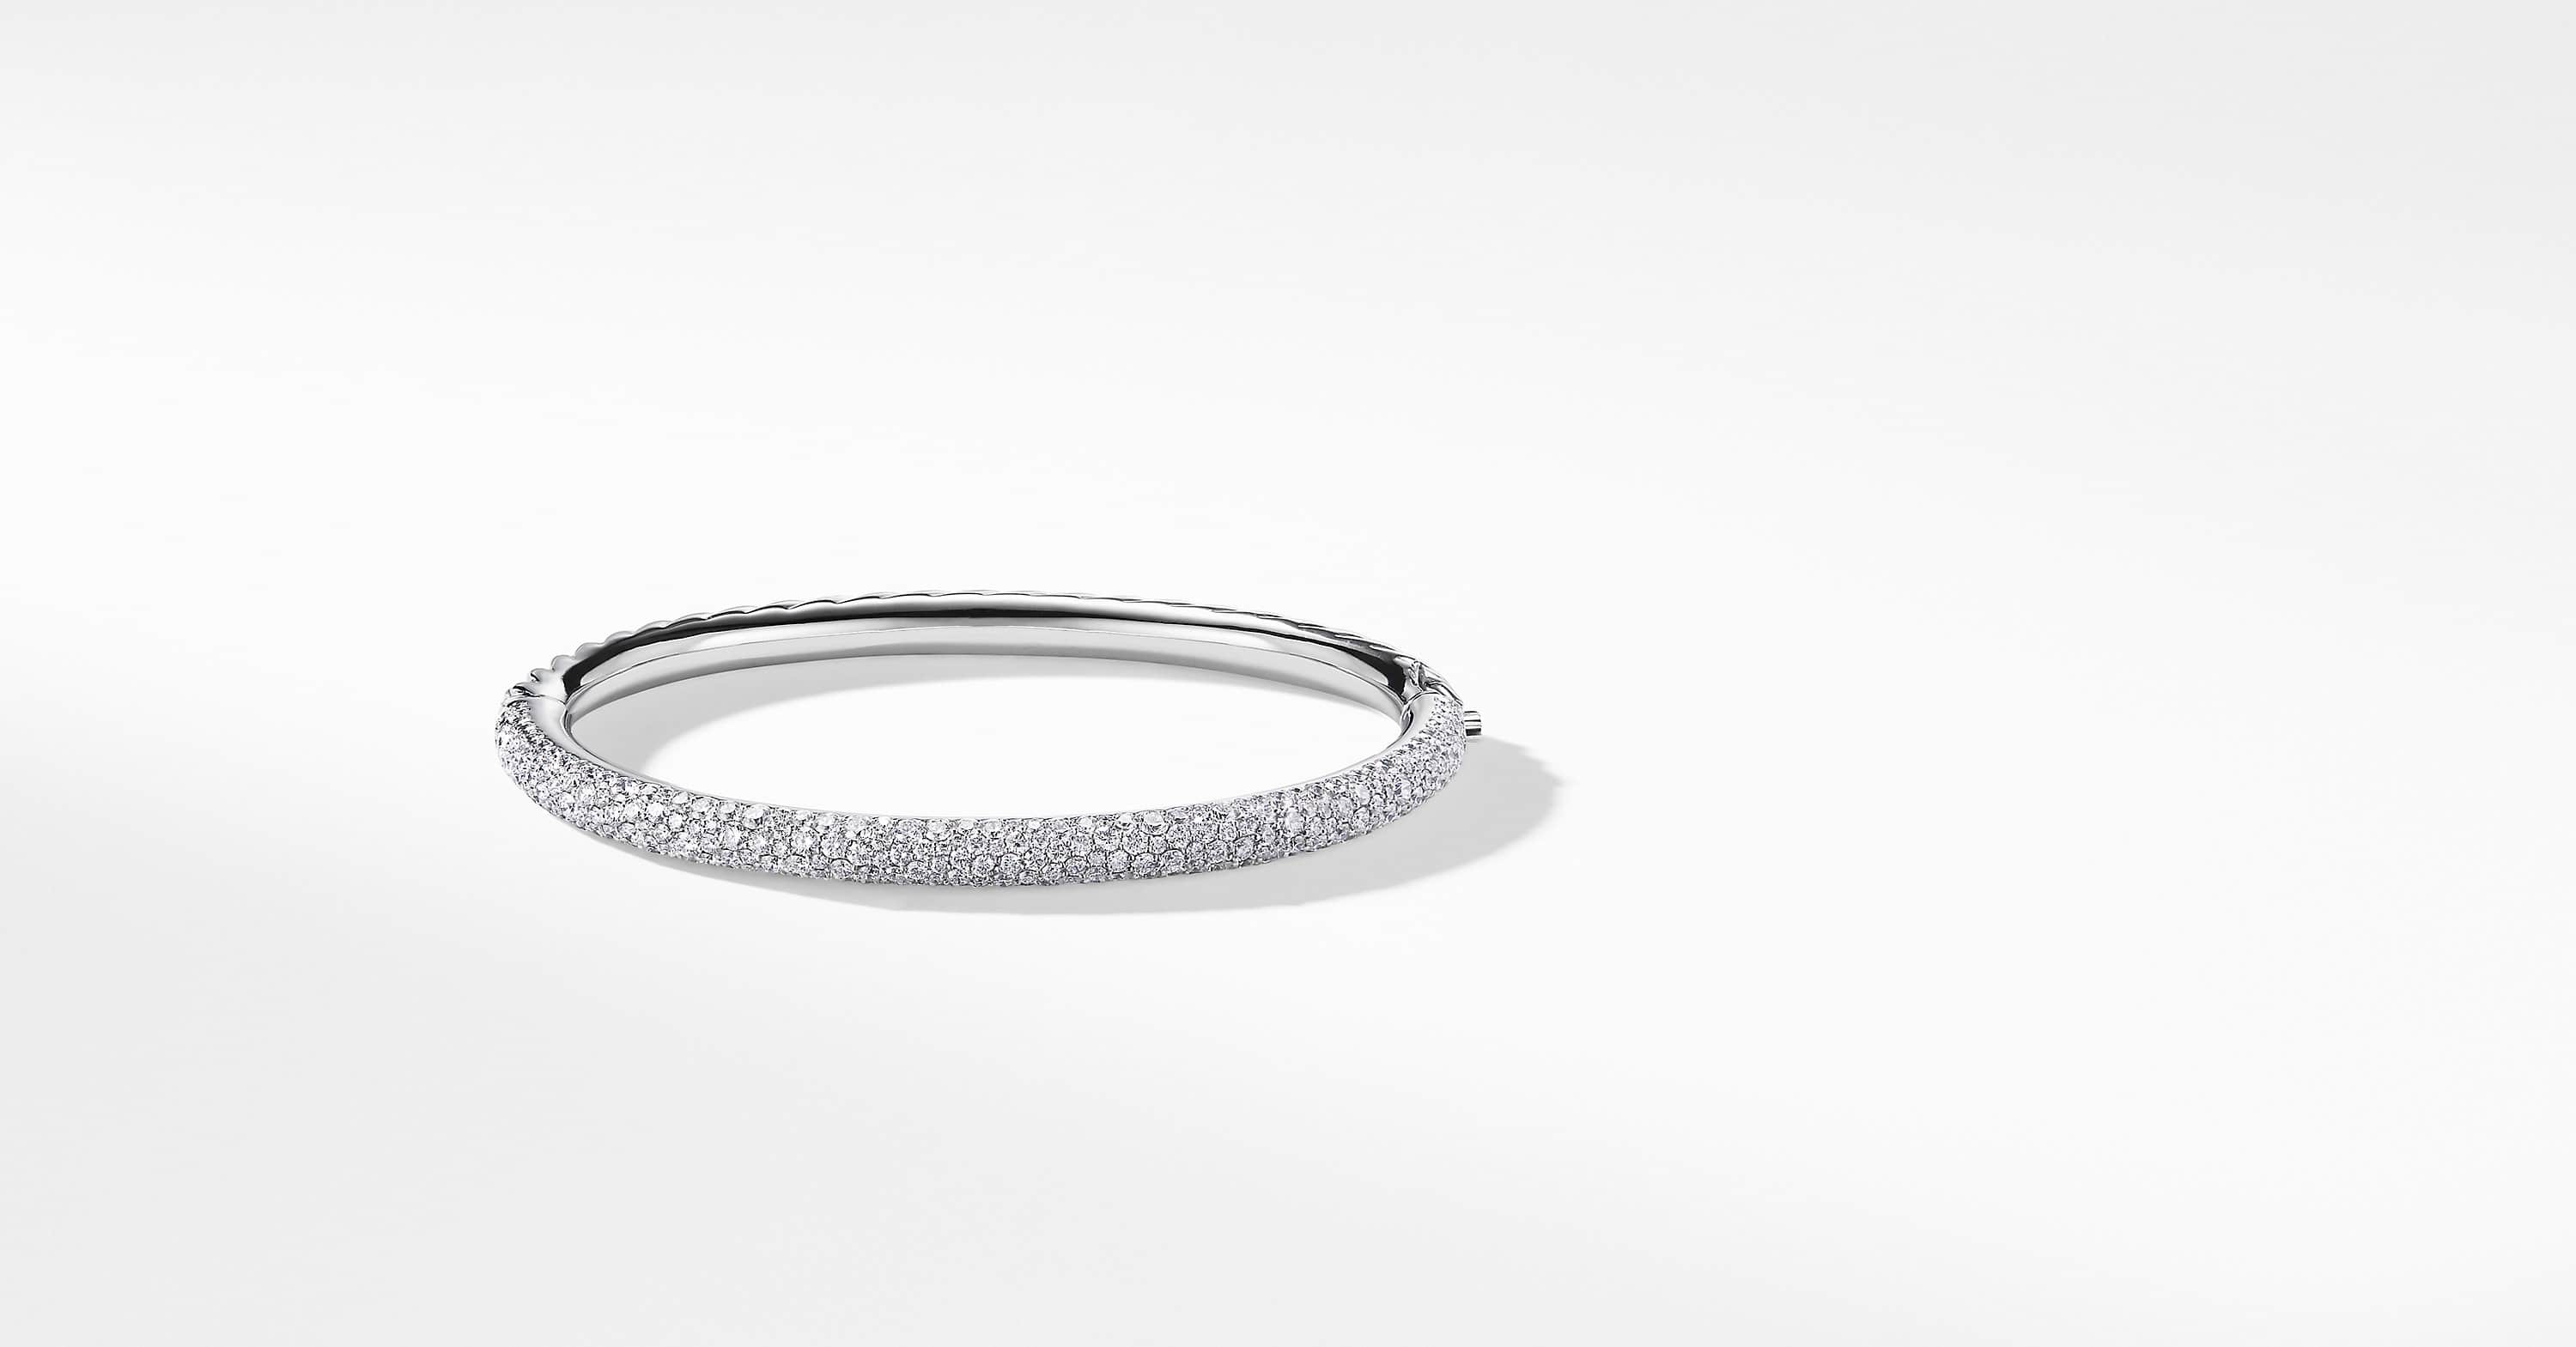 Limited Edition Pavé Cable Bangle in 18K White Gold